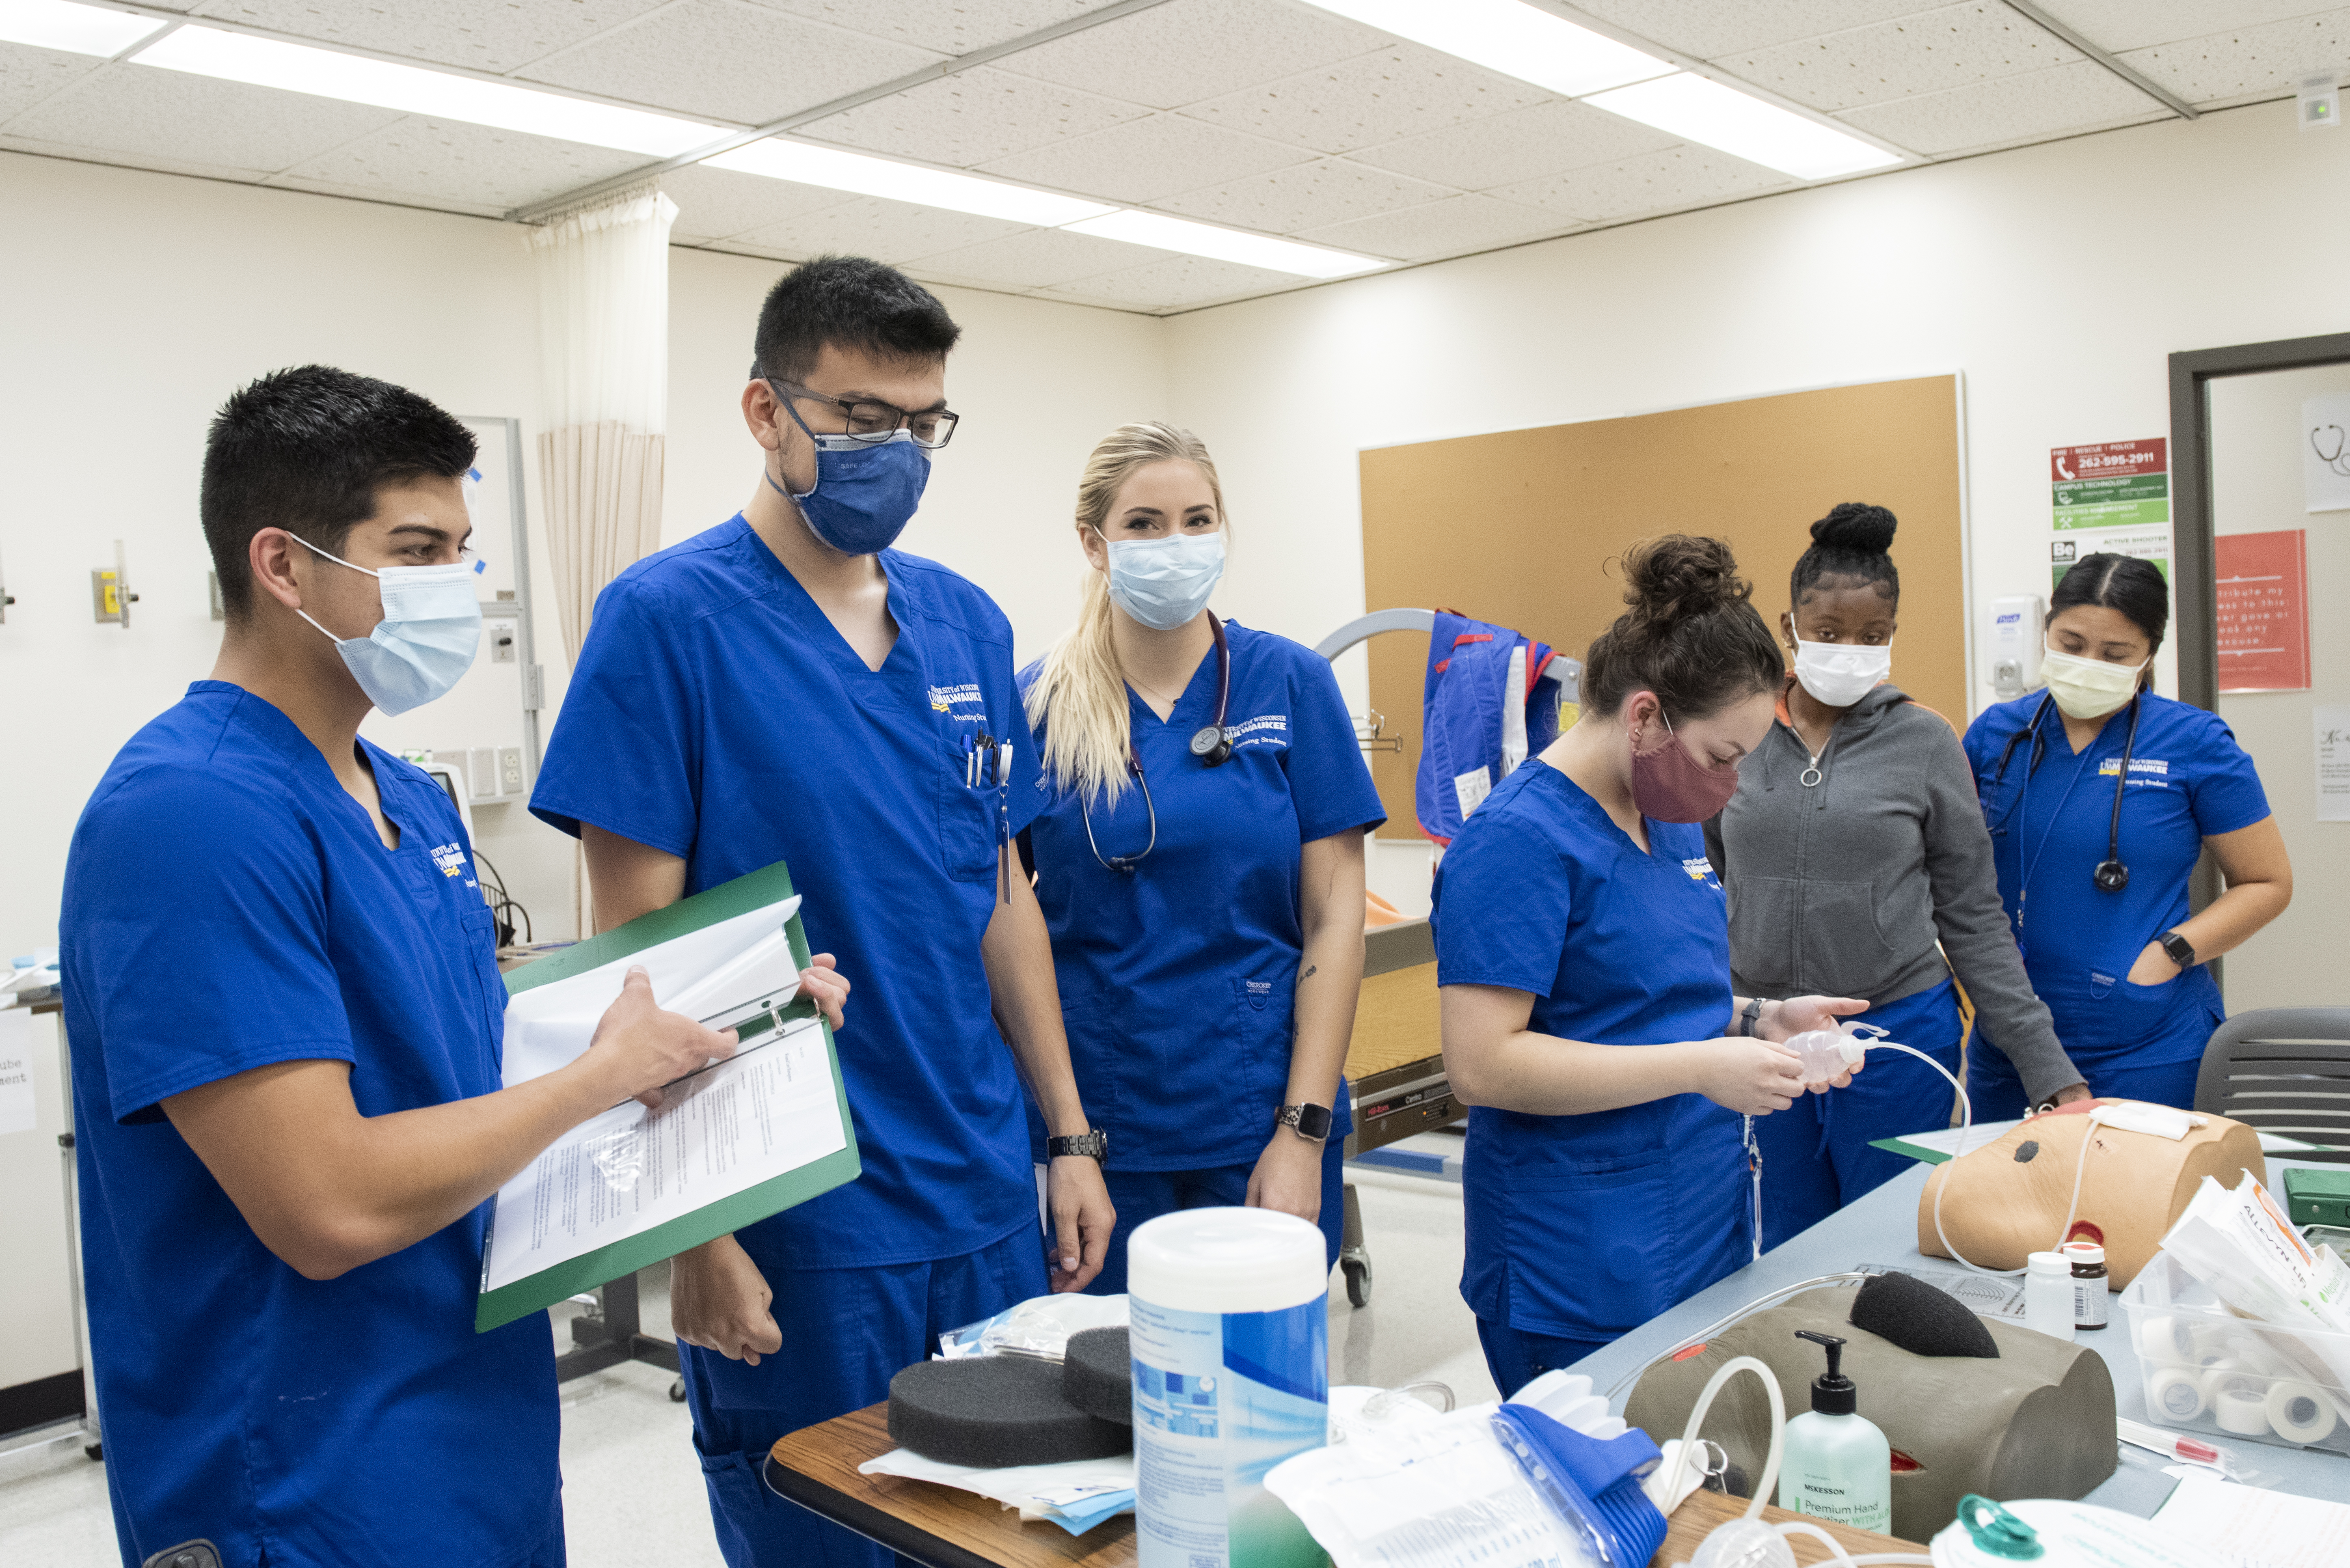 Students in their first clinical semester in the University of Wisconsin-Parkside's nursing program. The university is launching several initiatives to accelerate equity. (Photo: Alyssa Nepper)